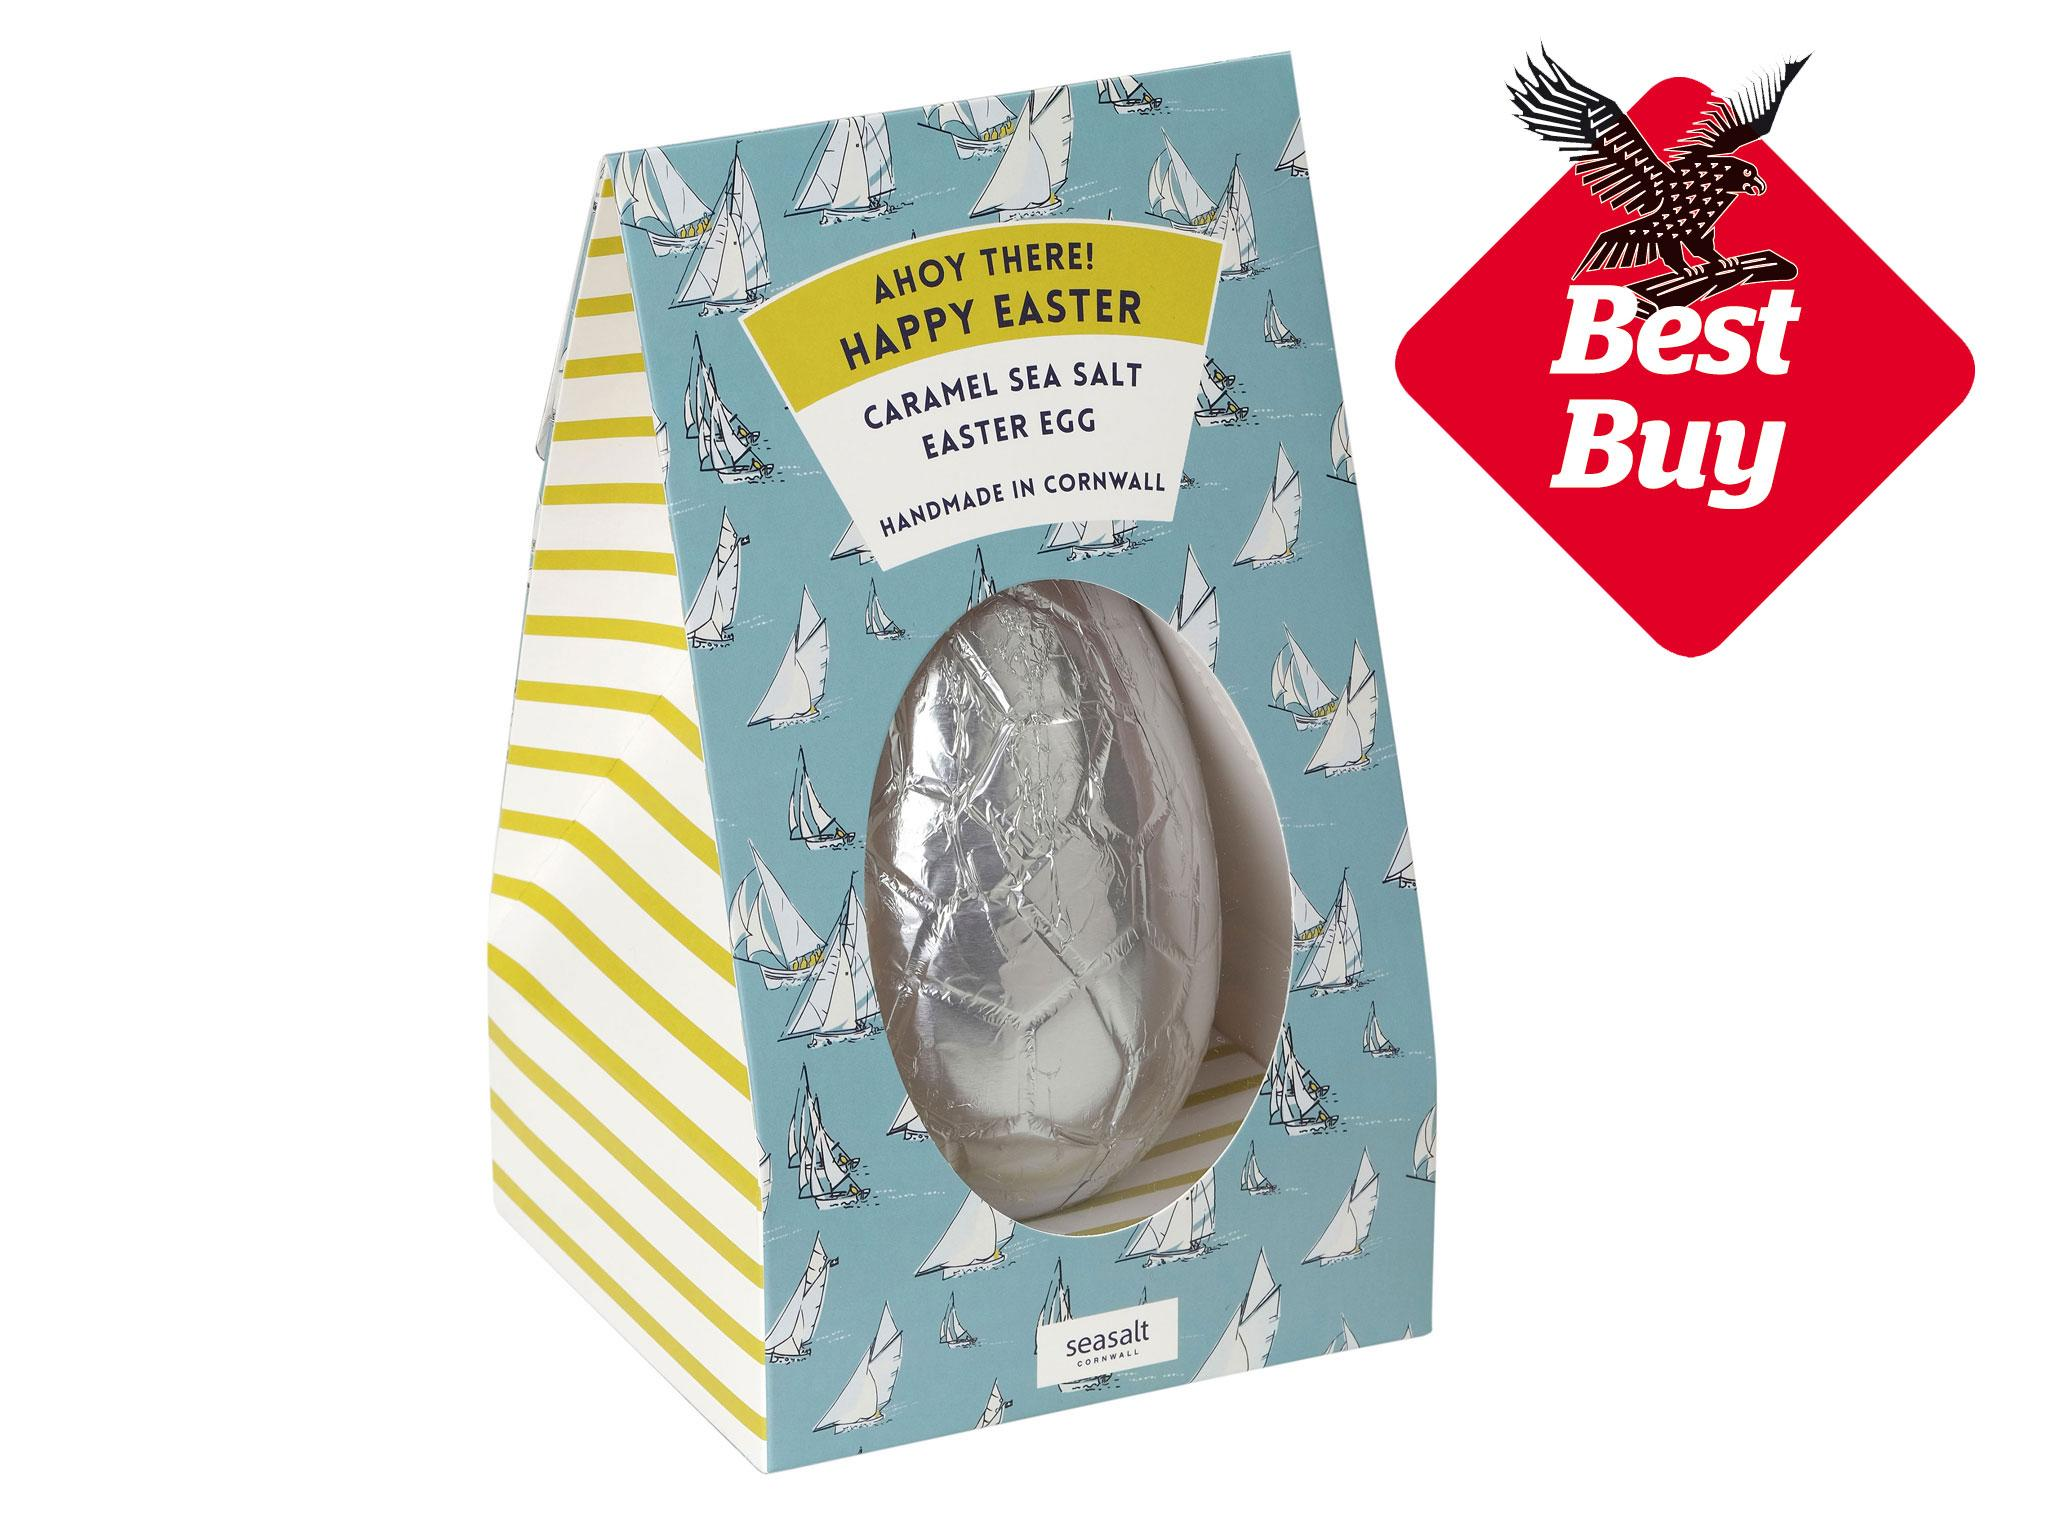 11 best Easter eggs under £10 | The Independent